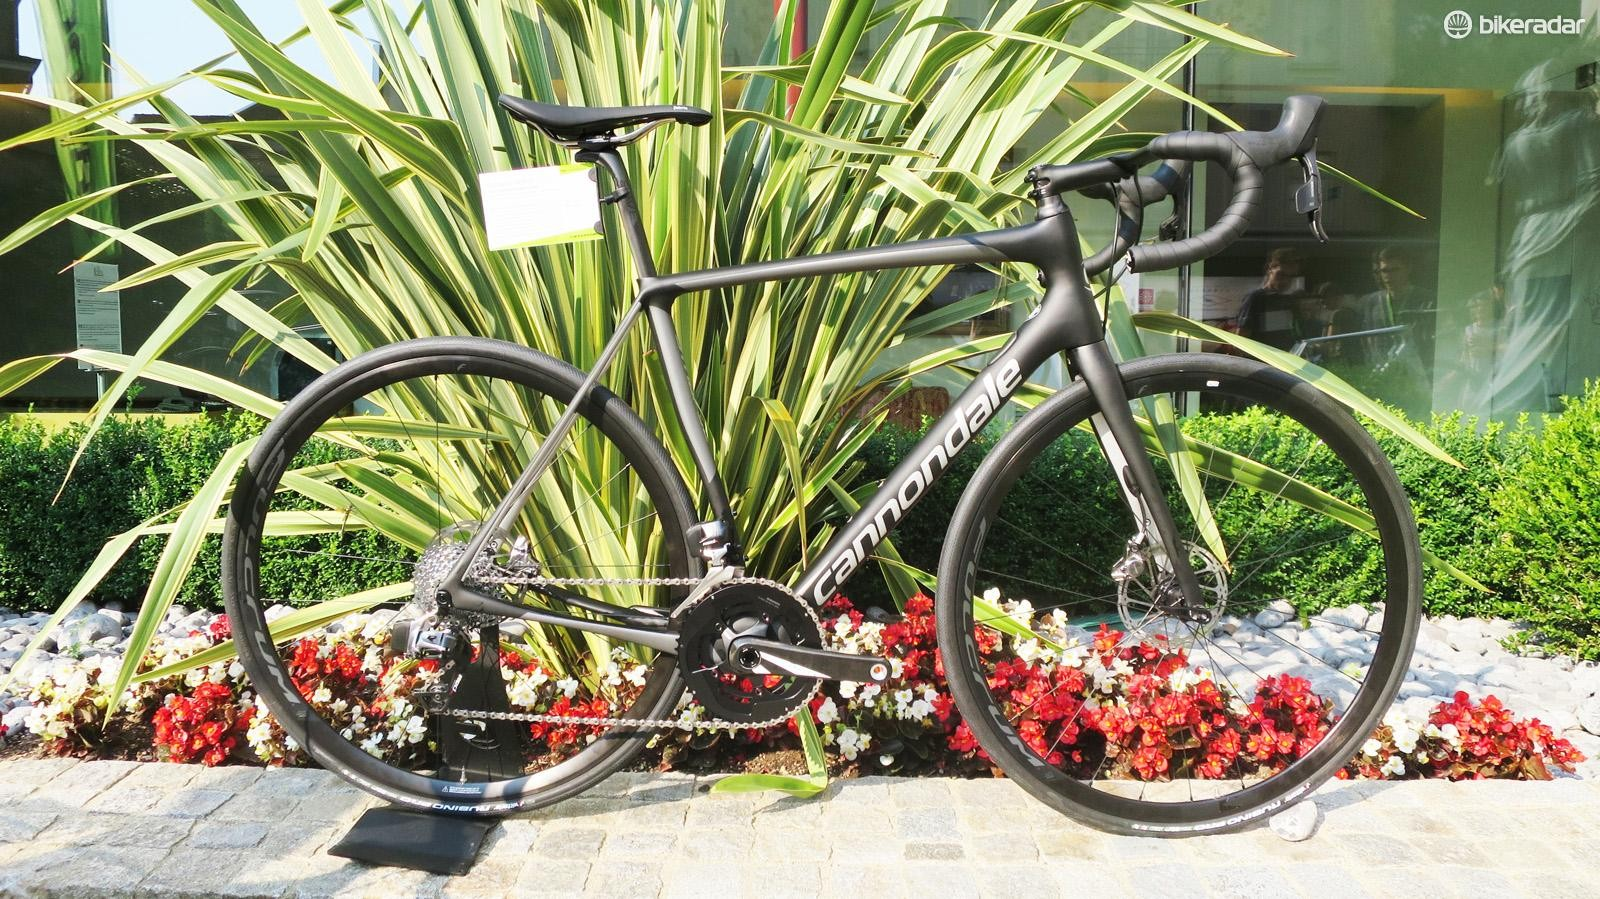 The lower level Synapse carbon frame now comes in some high-end builds, such as this SRAM eTap model